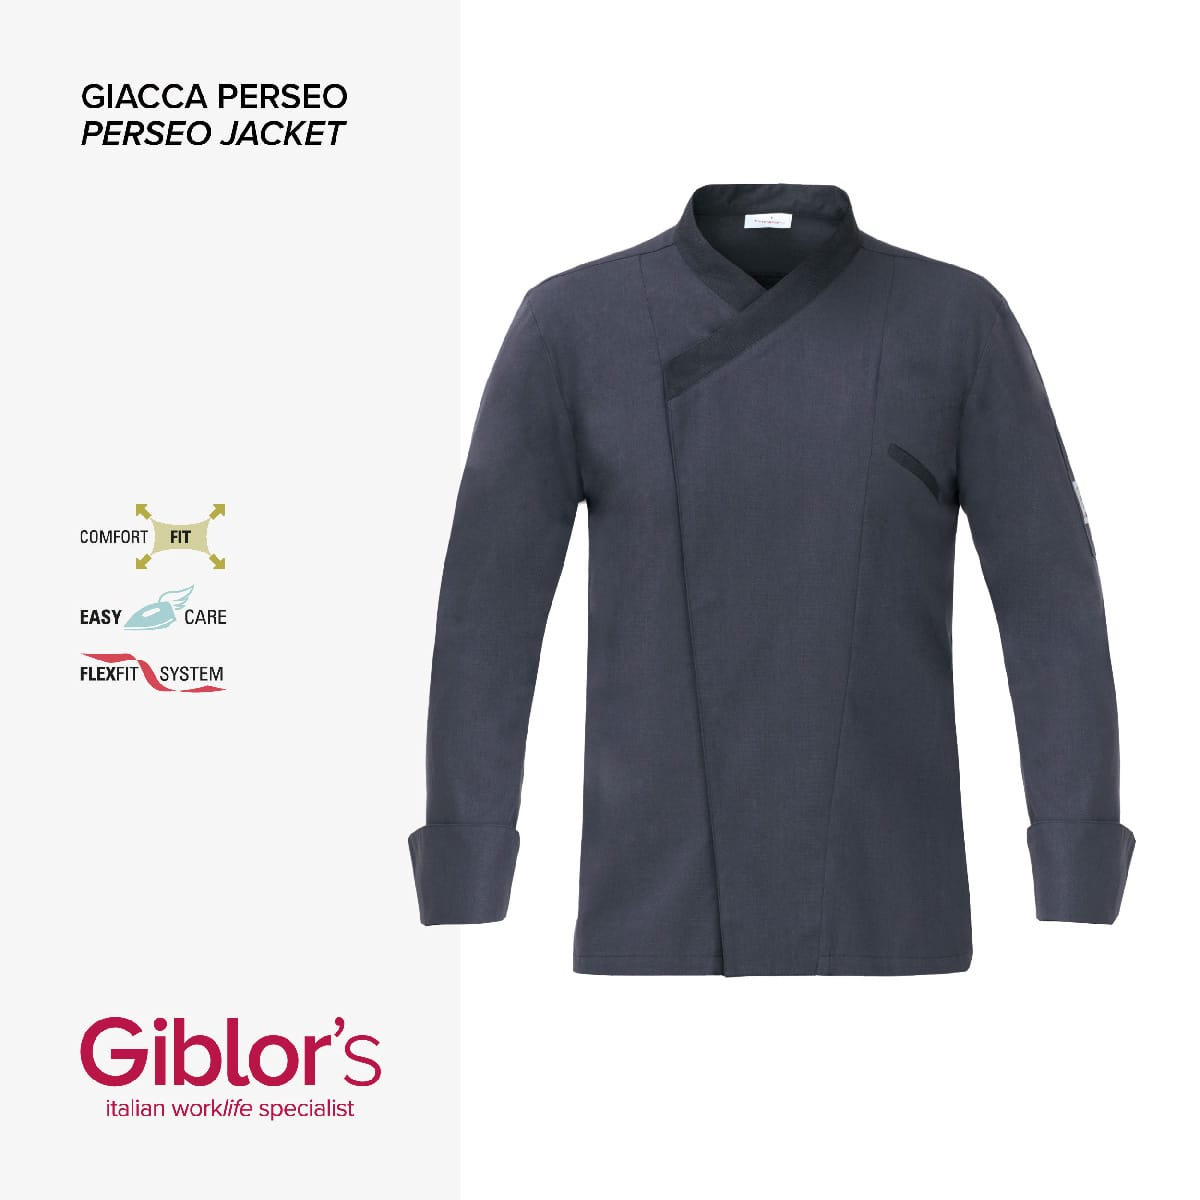 Giblor's - GIACCA PERSEO - Art 18P08G953 grigio